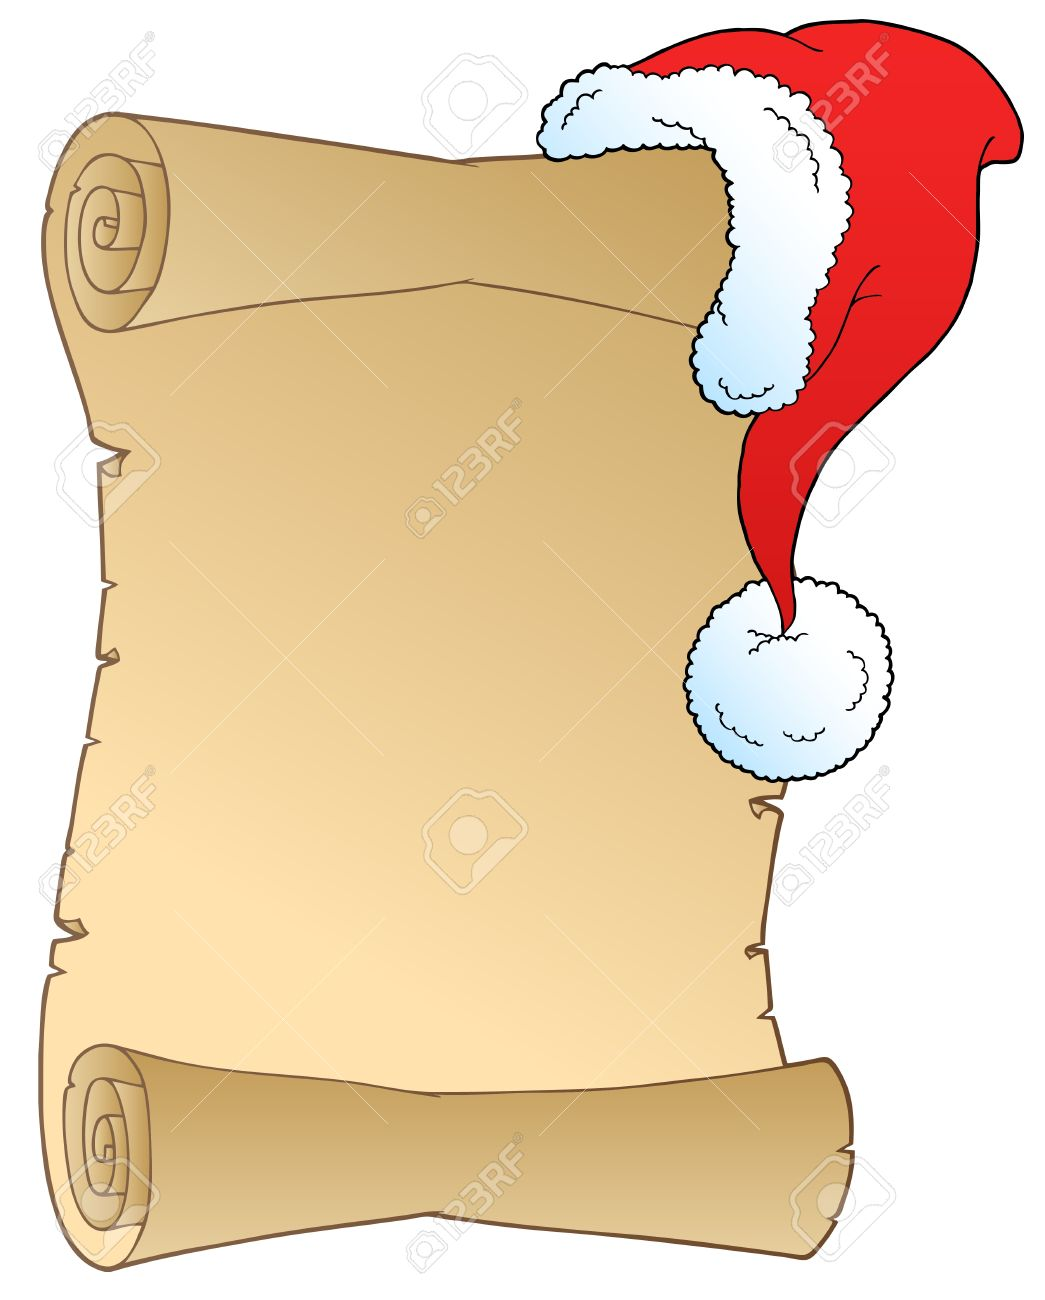 Clipartfest scroll with hat. Christmas list clipart